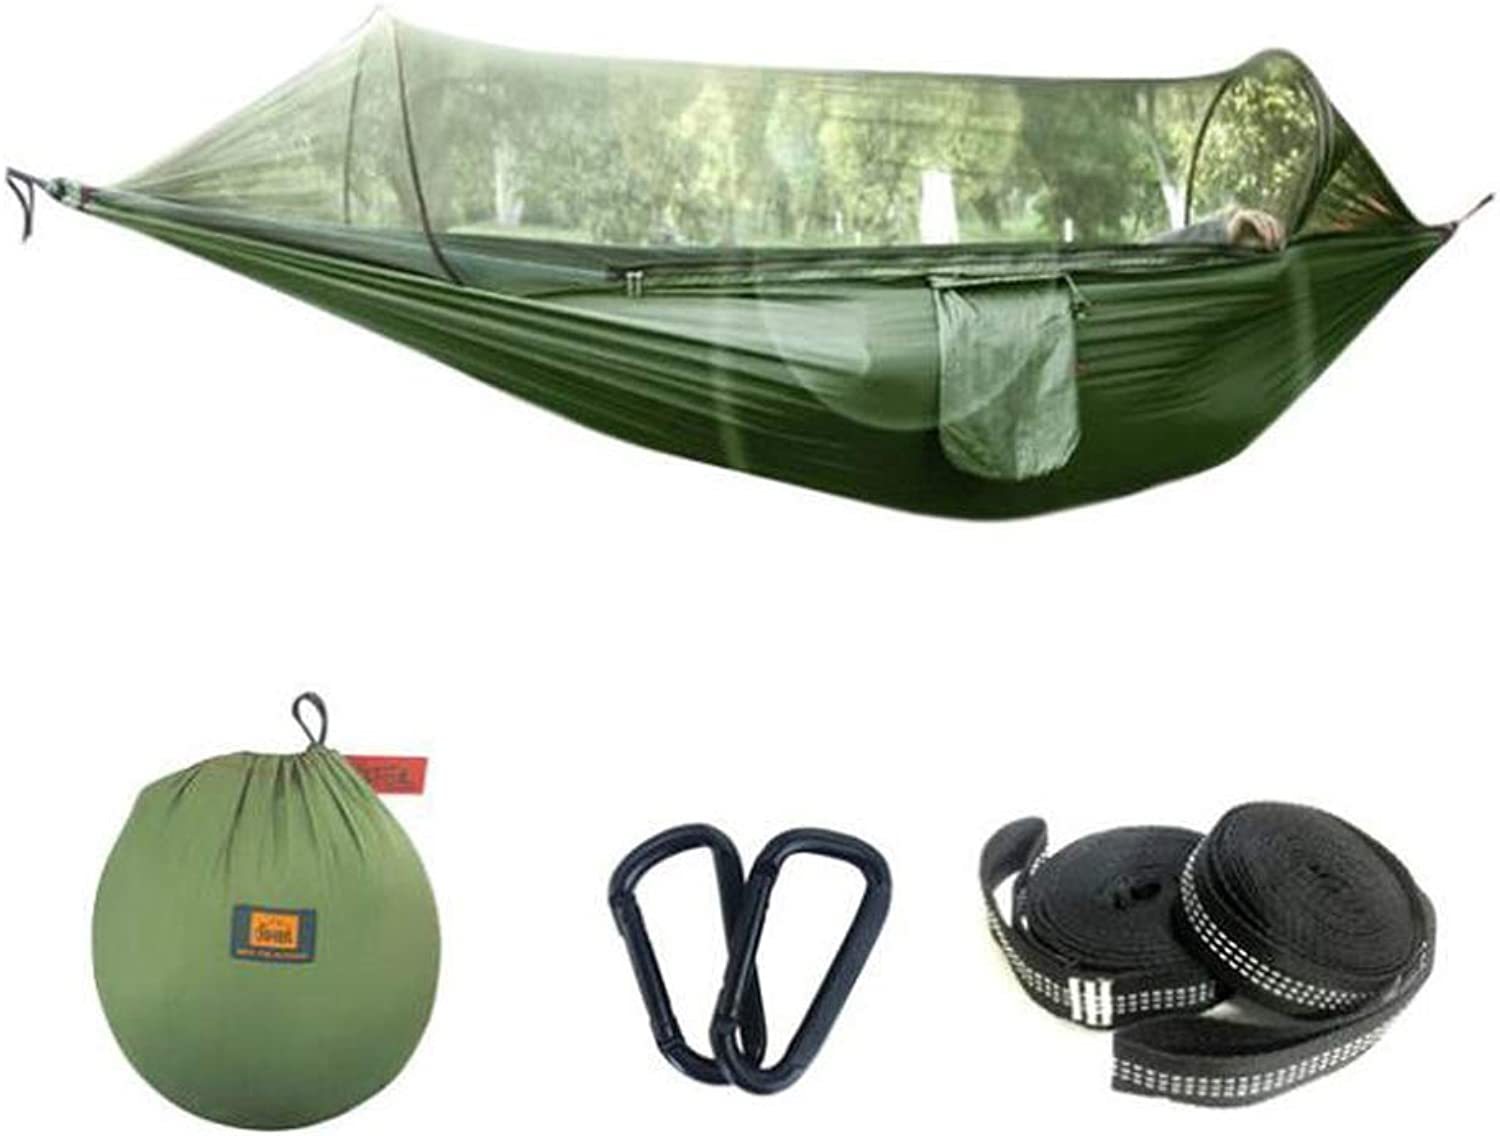 Camping Hammock Swing, Portable Windproof Yarn Account Hanging Outside The Air Tent Speed Open Leisure Tent